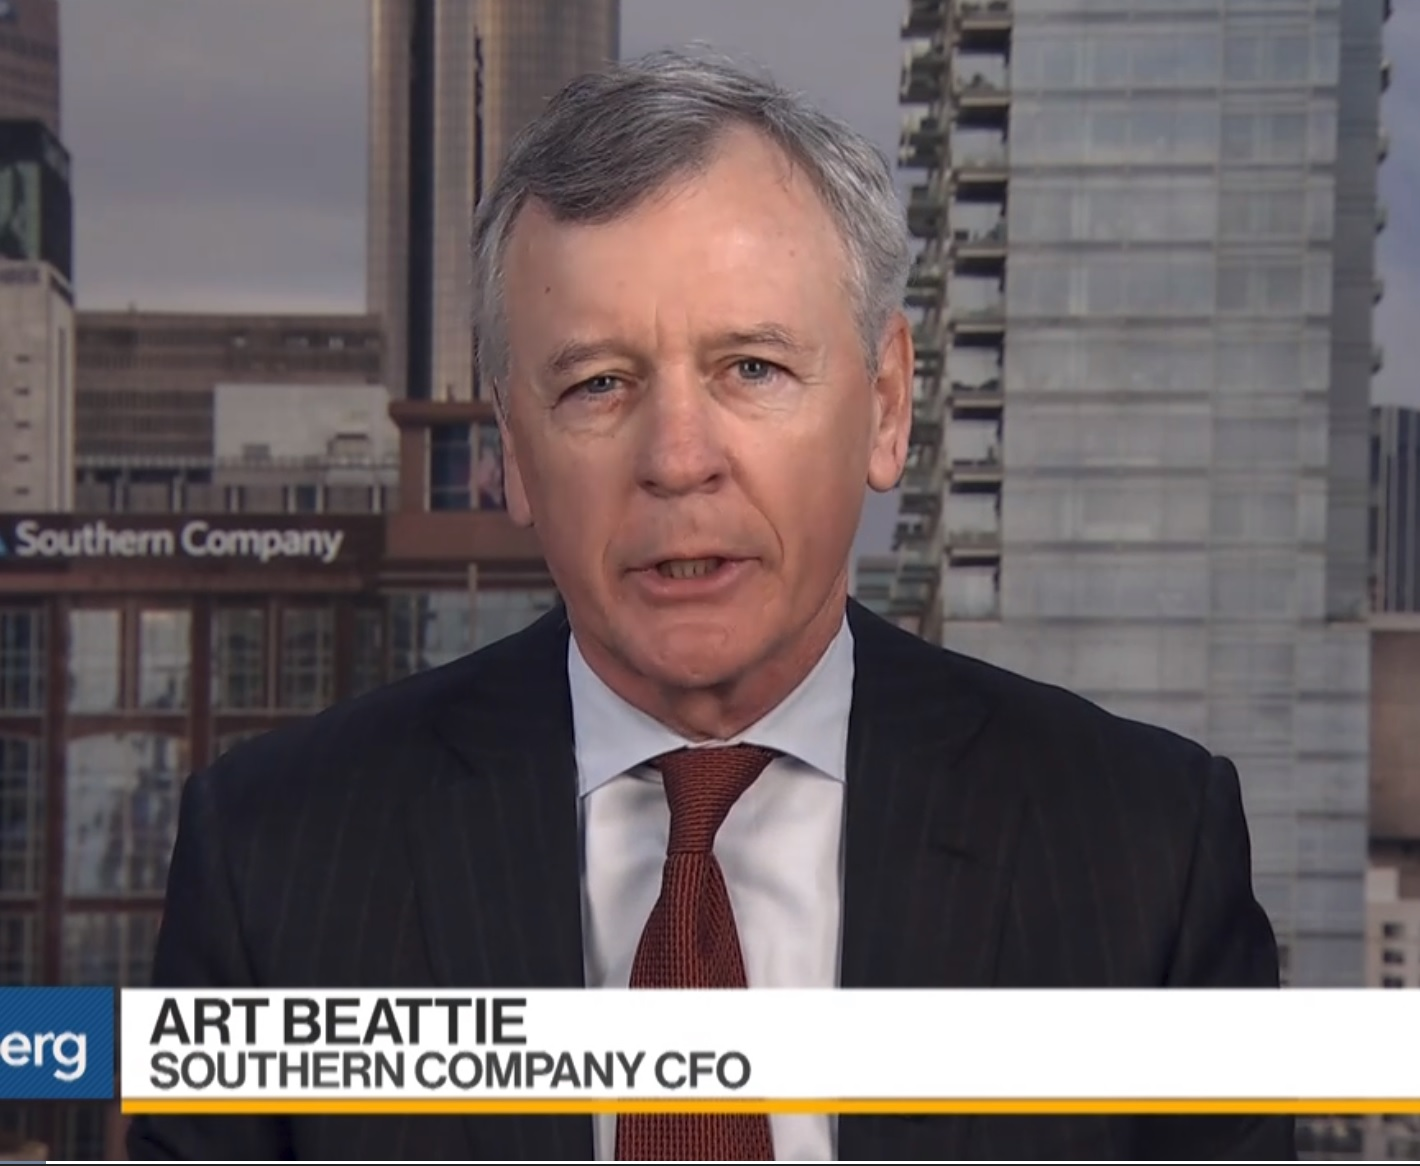 Southern Company Is Primarily Focused on Labor, Says CFO Beattie